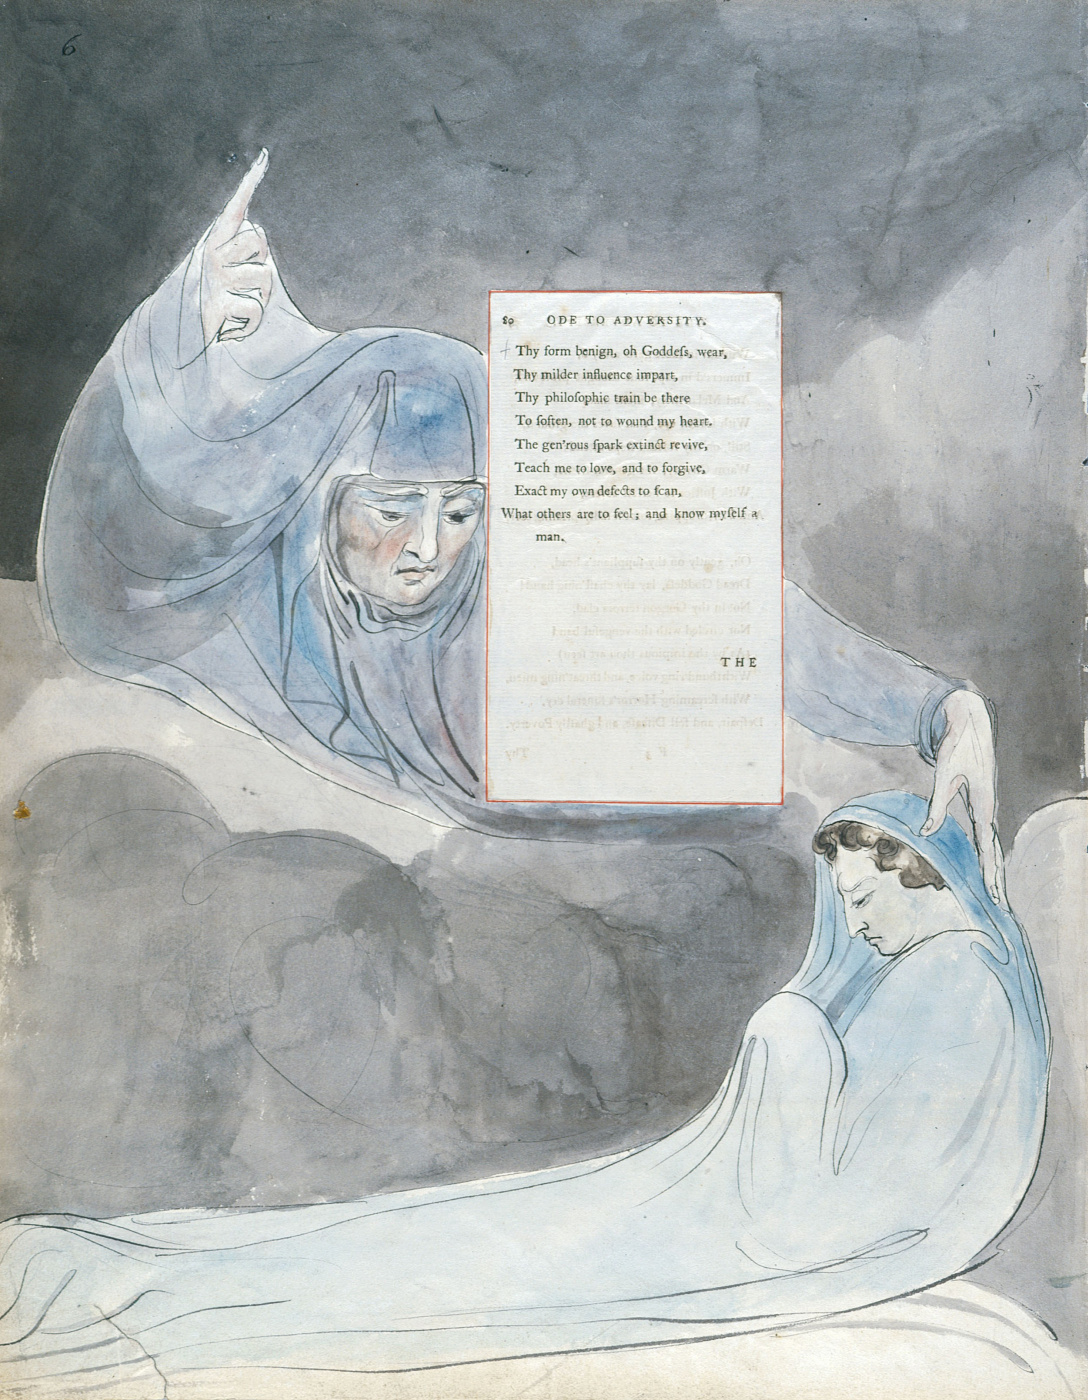 William Blake. Illustrations to the poems. Ode to misfortune. Sheet 6